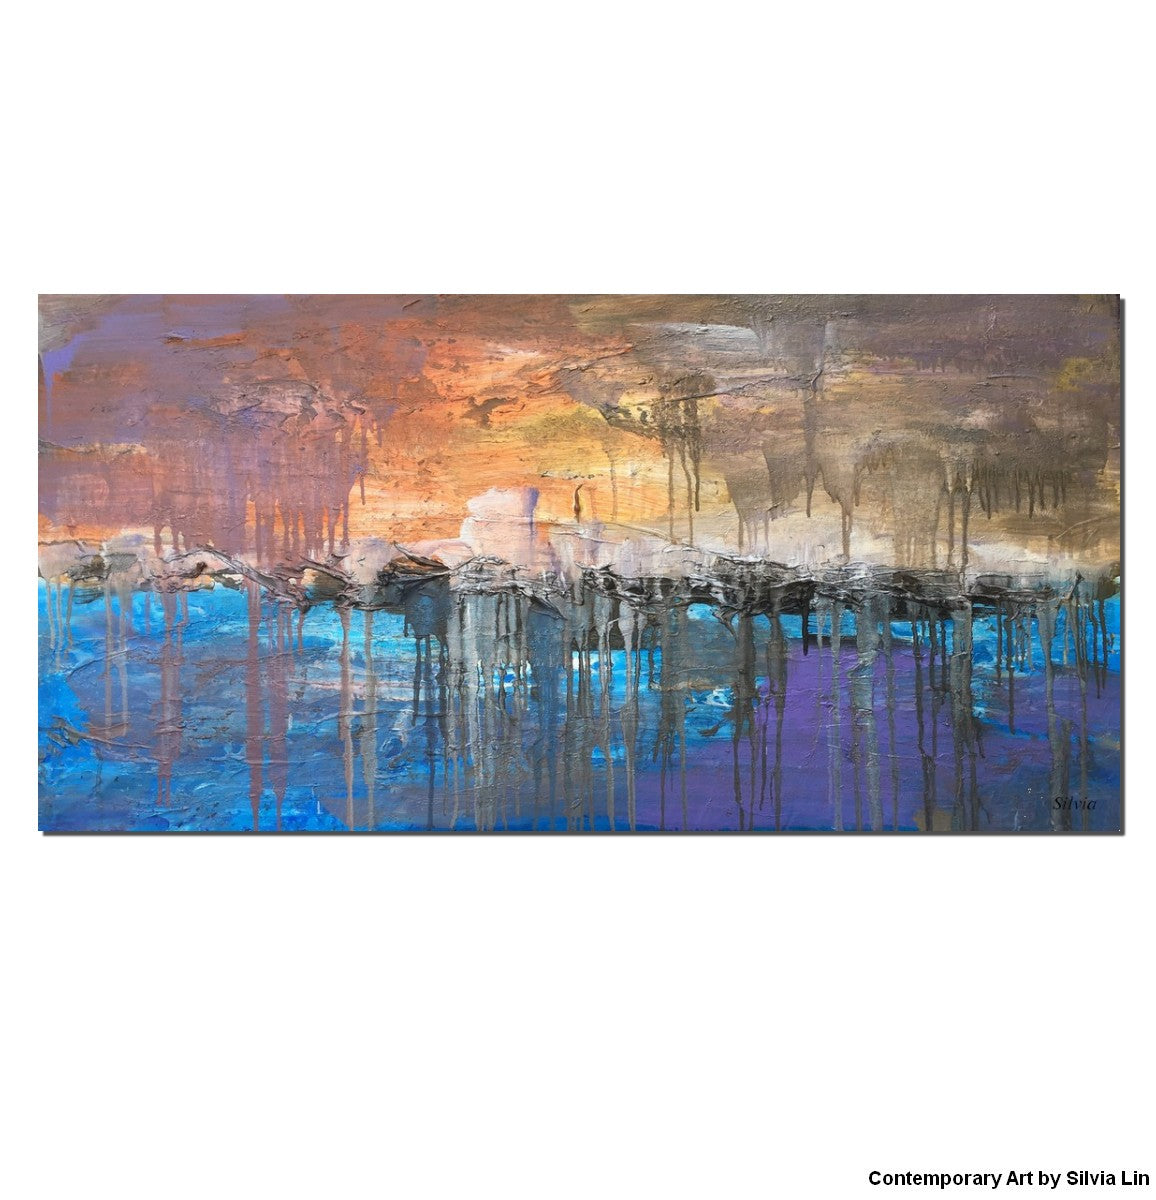 Abstract Painting, Contemporary Painting, Canvas Painting, Fine Art, Oil Painting Original, Large Oil Painting, Abstract Landscape Painting - Art Painting Canvas